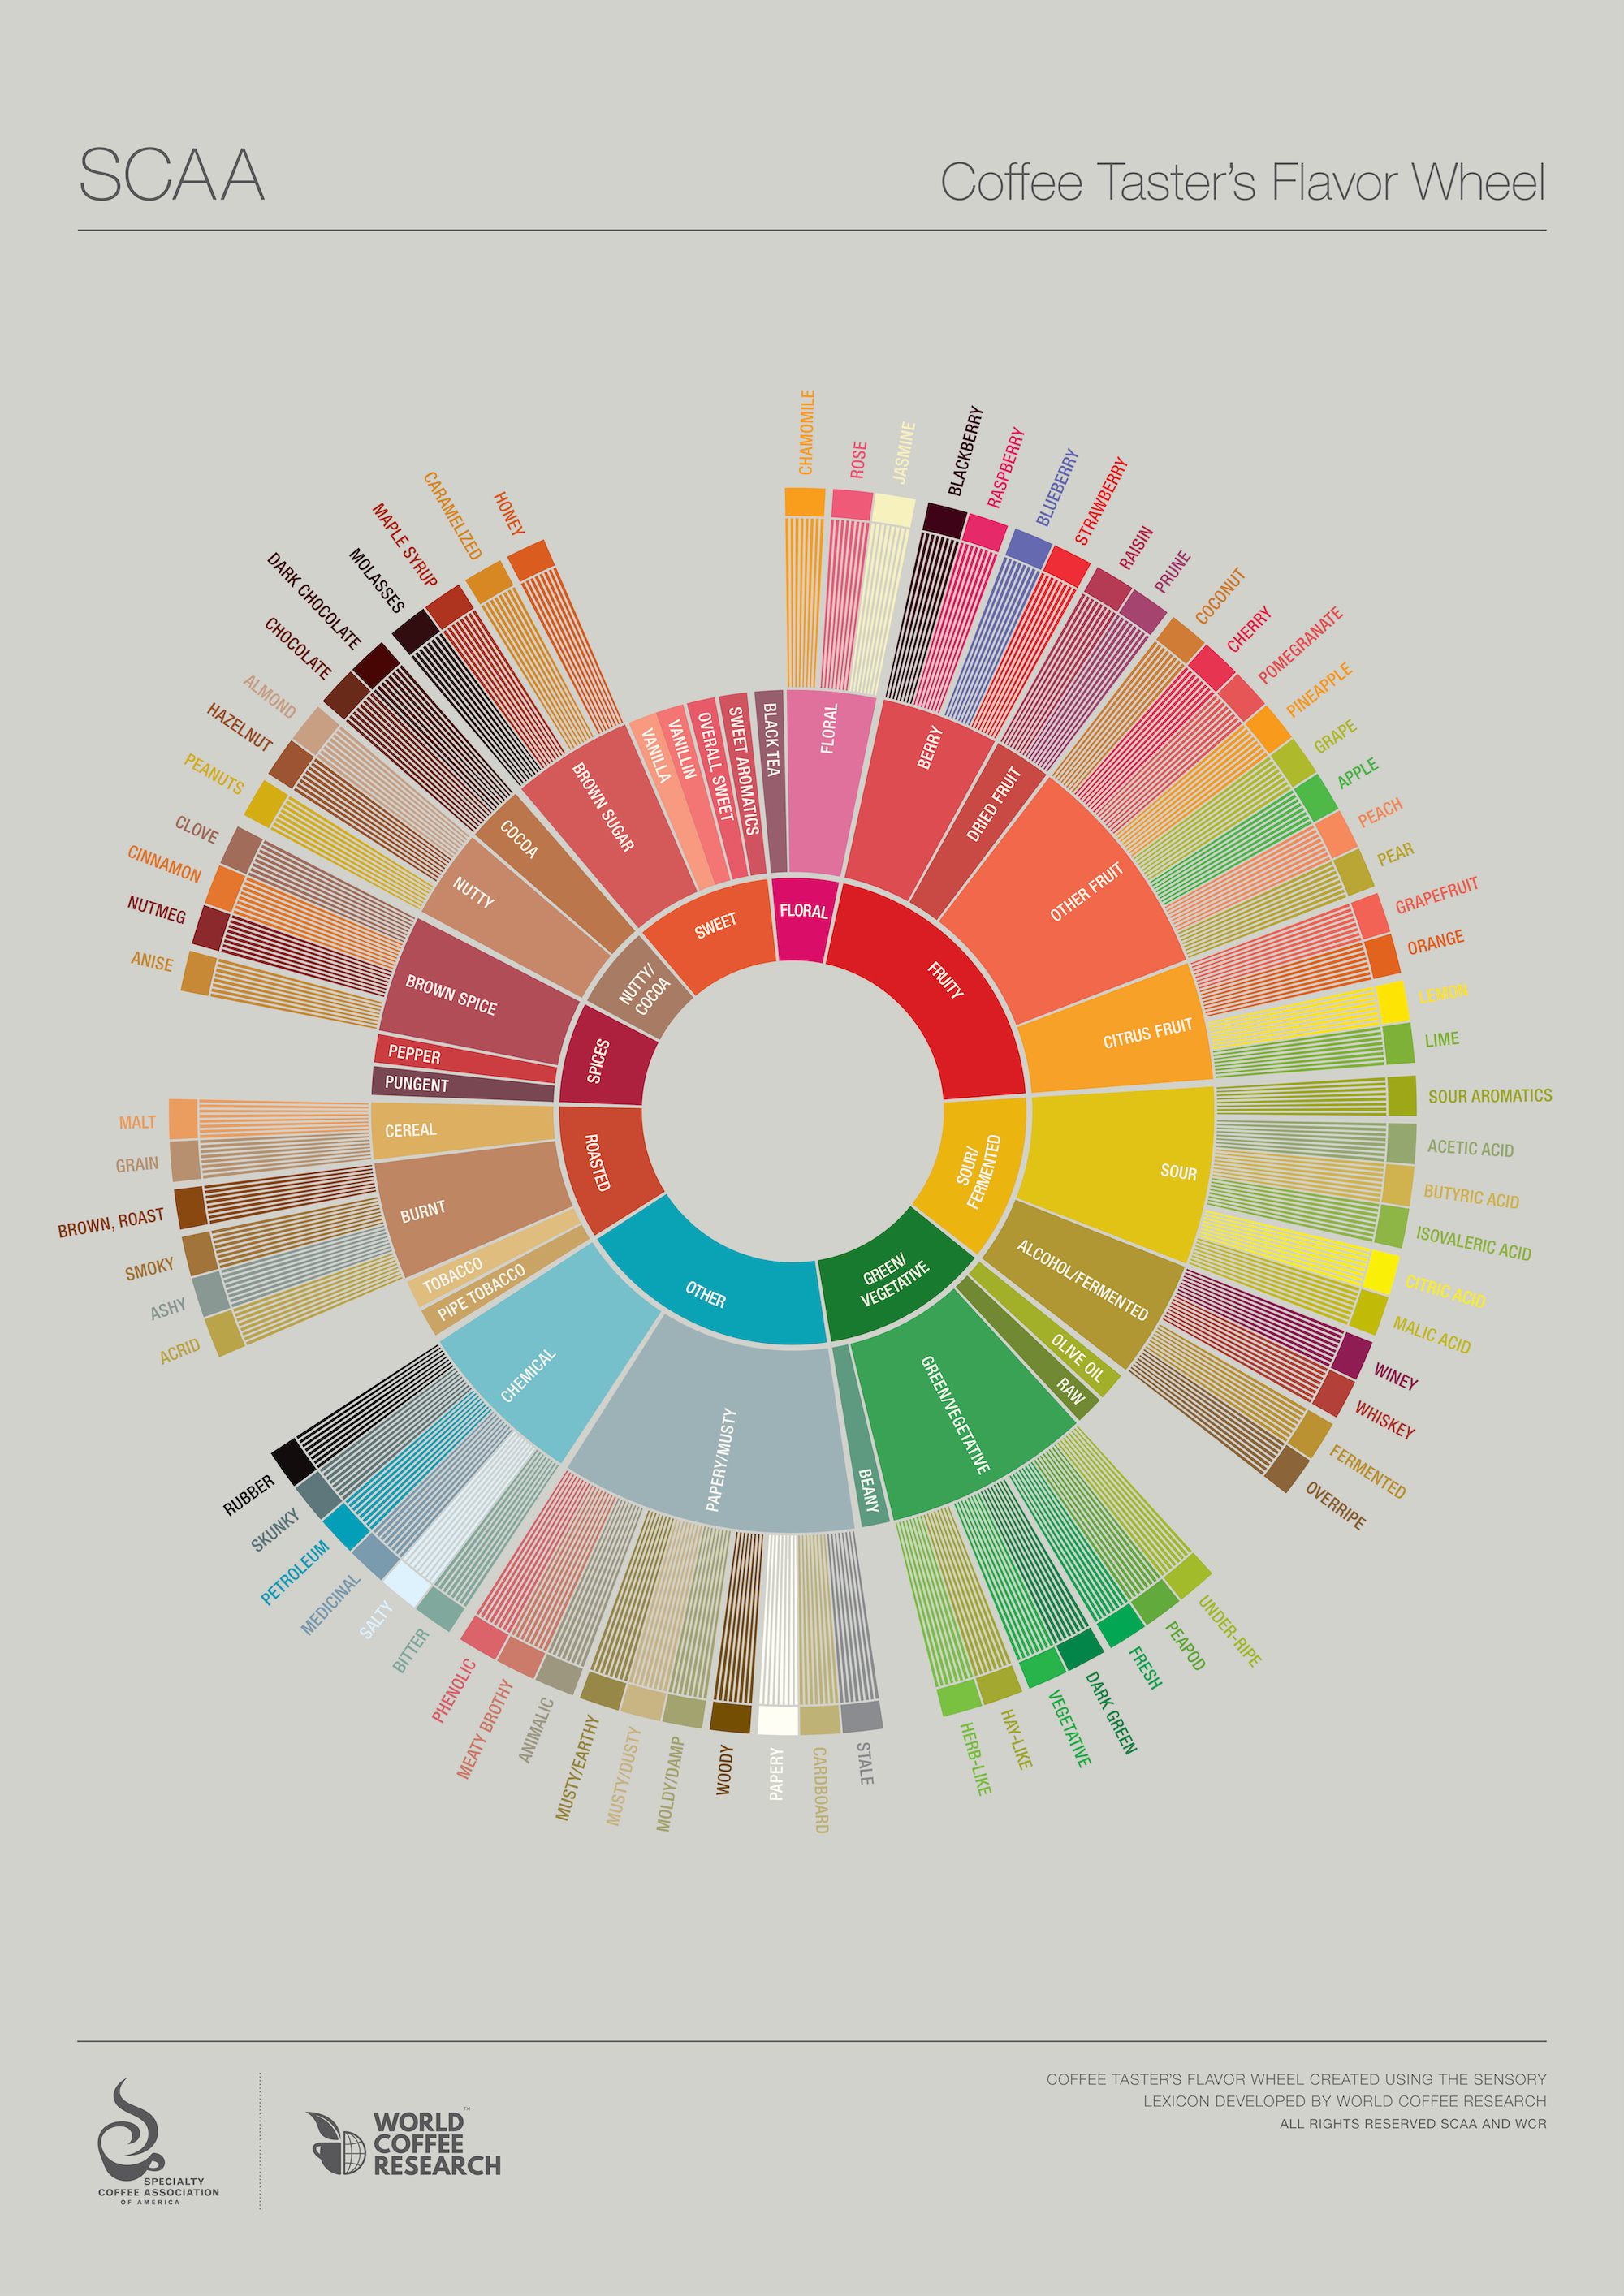 SCAA's beautifully redesigned flavor wheel